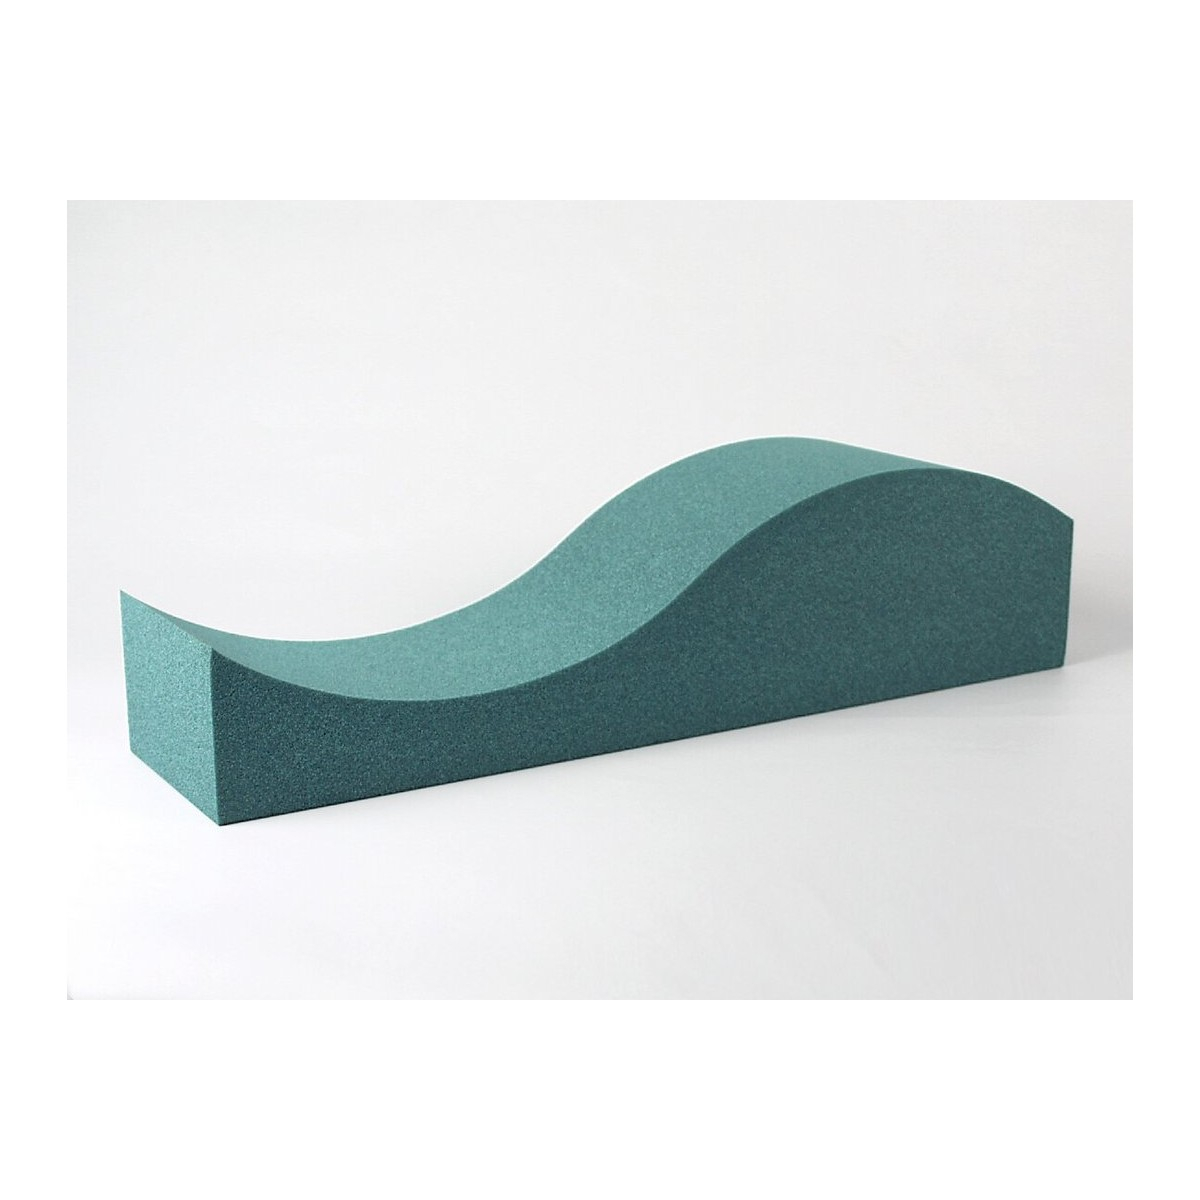 EliAcoustic Surf Pure Turquoise